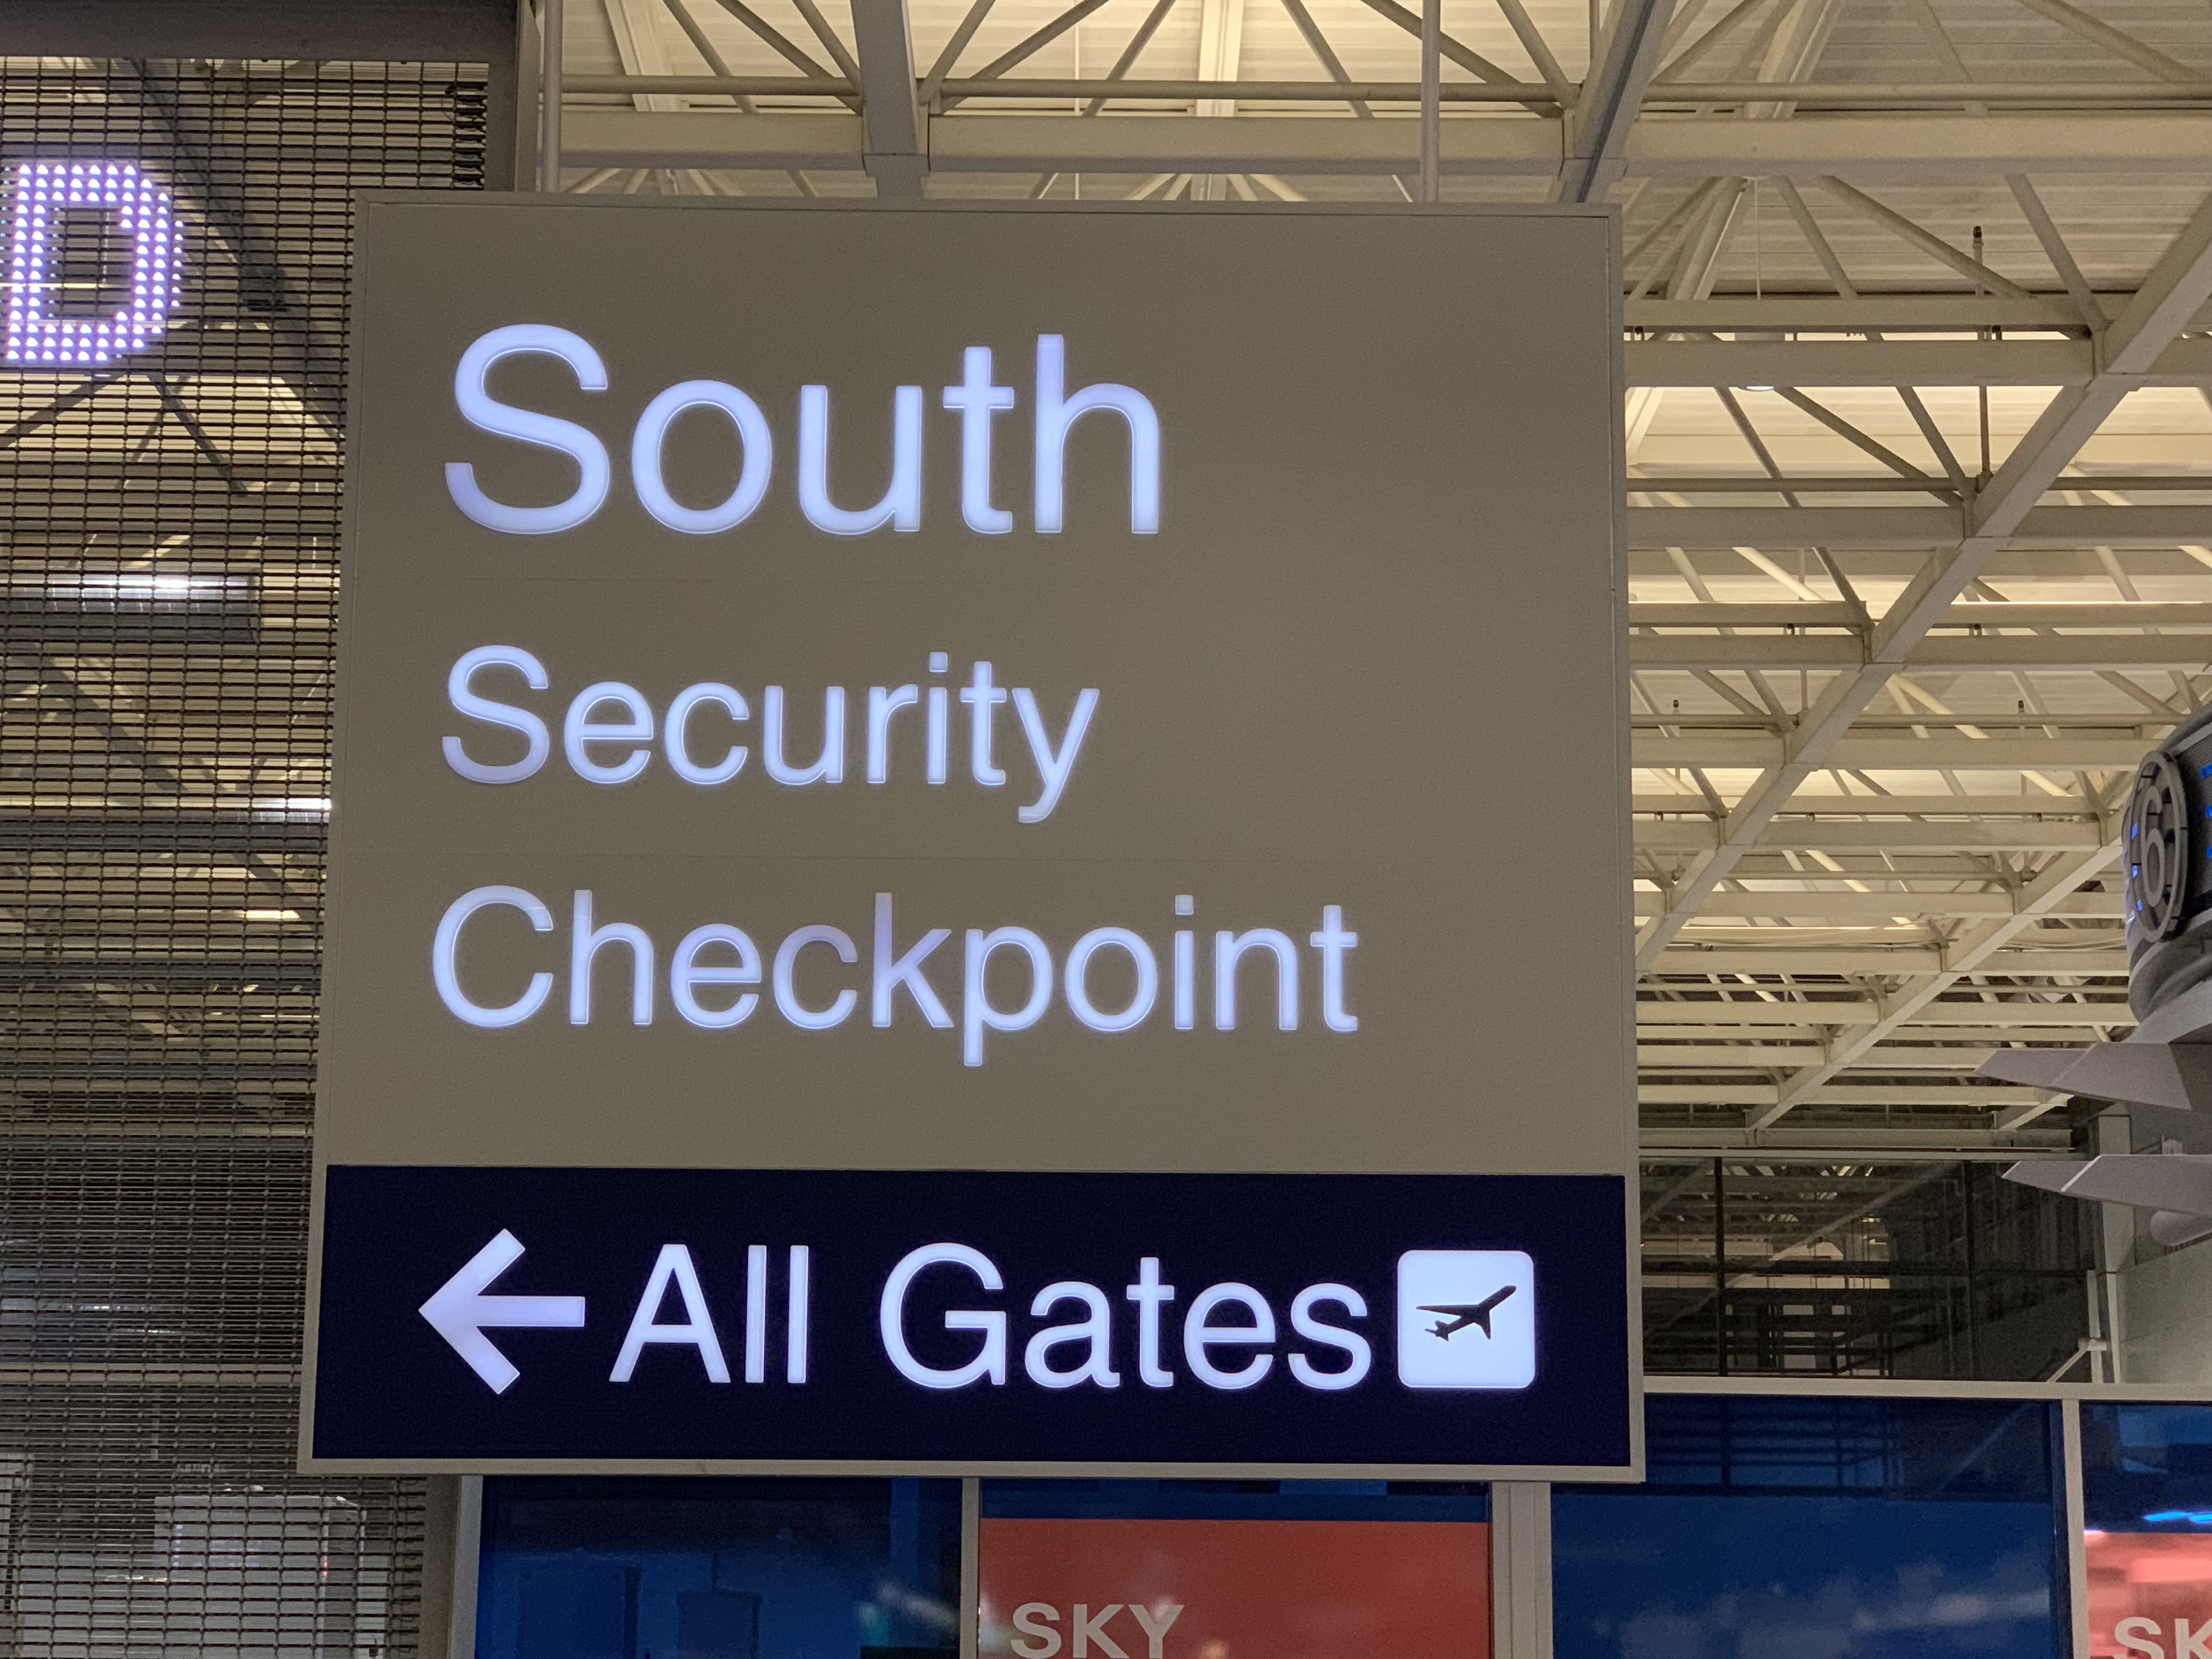 South security checkpoint